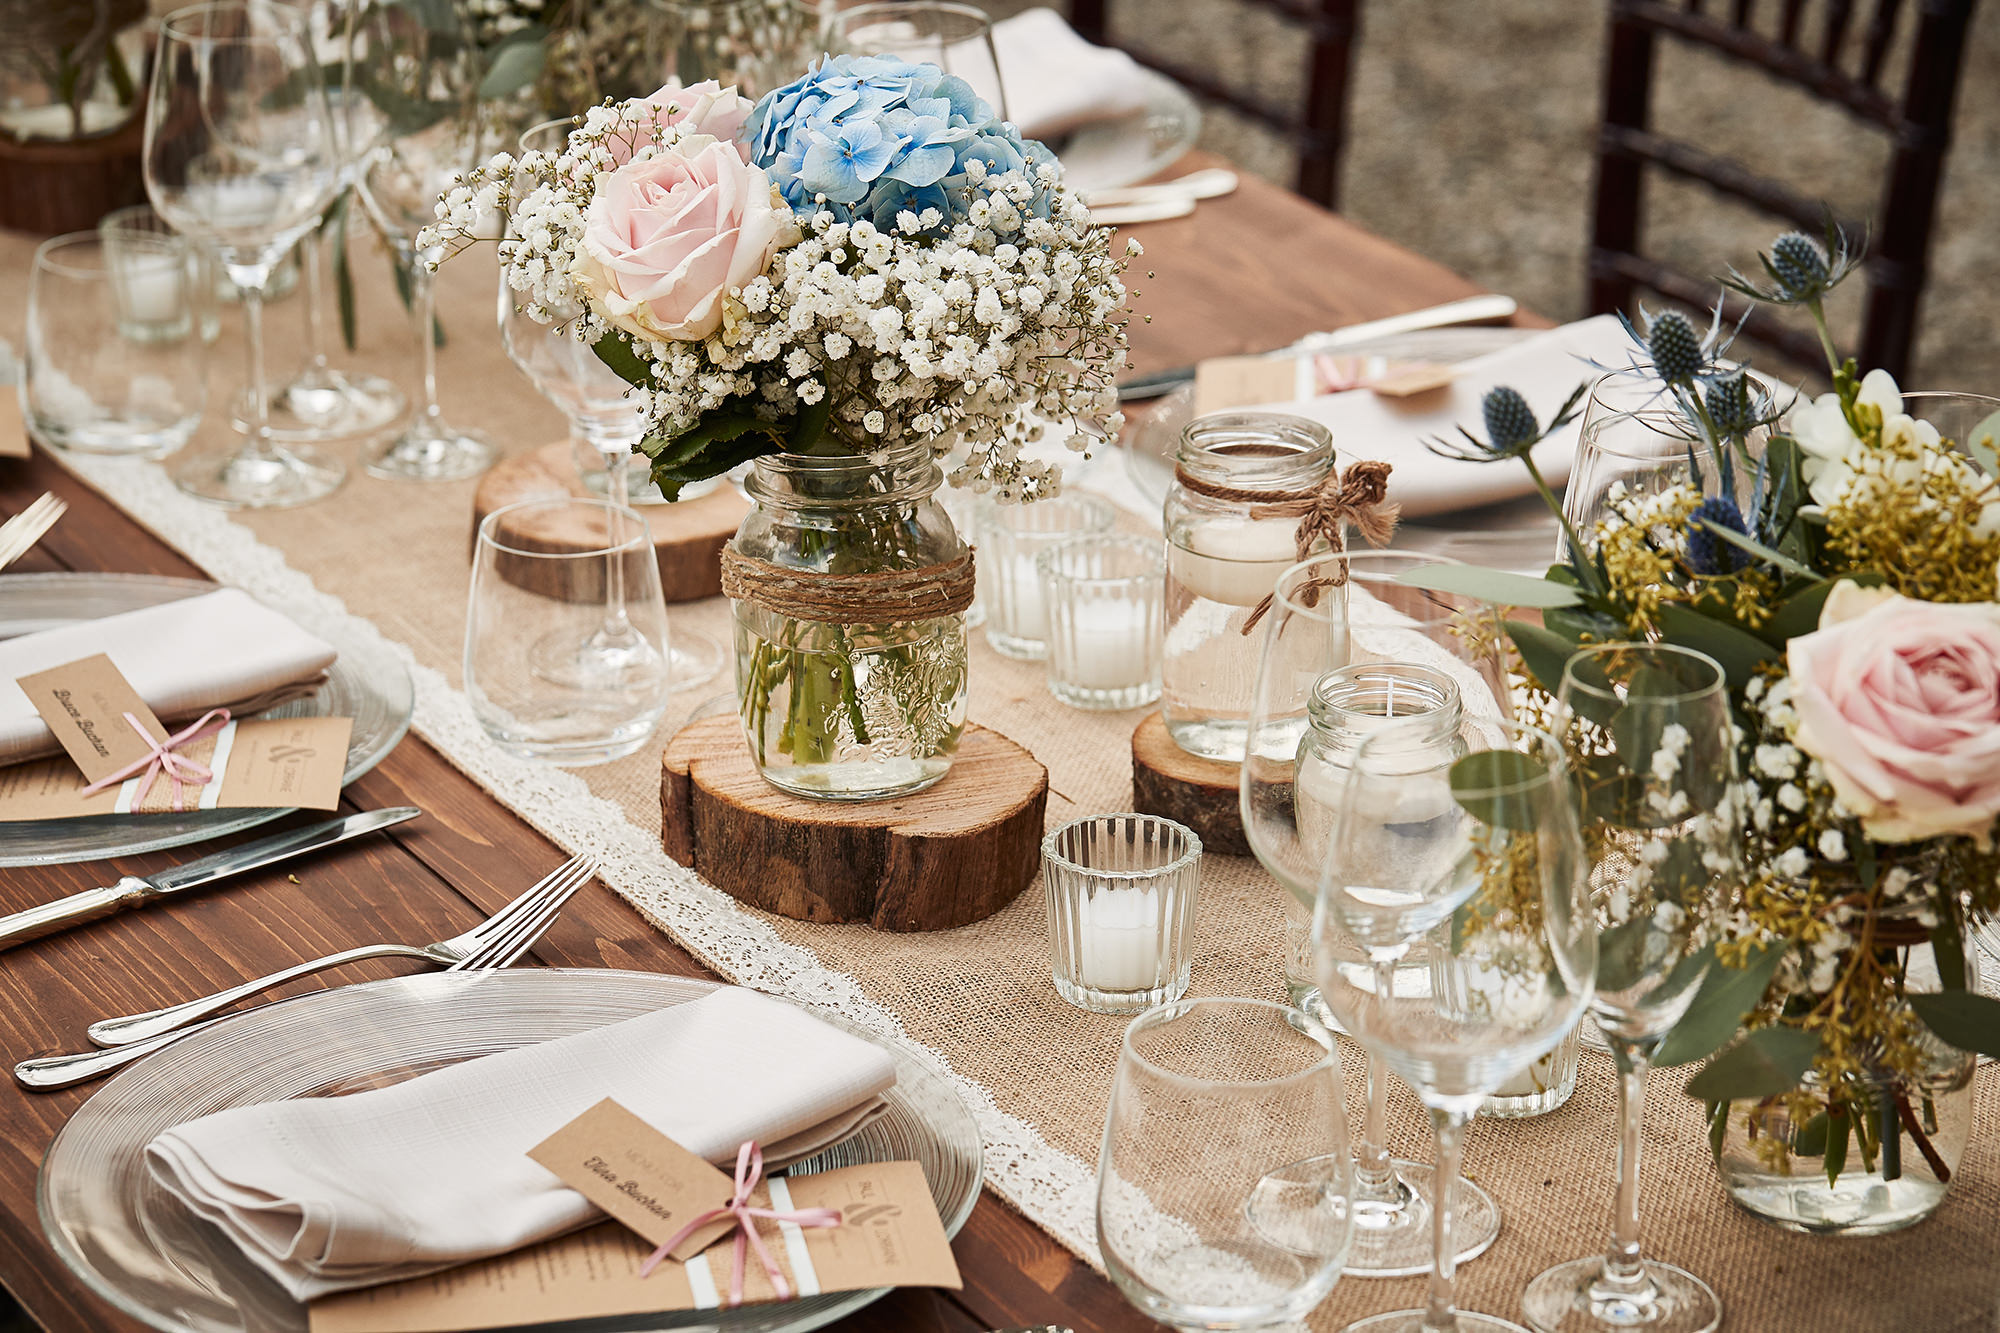 Add A Small Bottle Of Limoncello Or Some Local Olive Oil As Wedding Favour And Your Table Is Treat For The Eyes Too